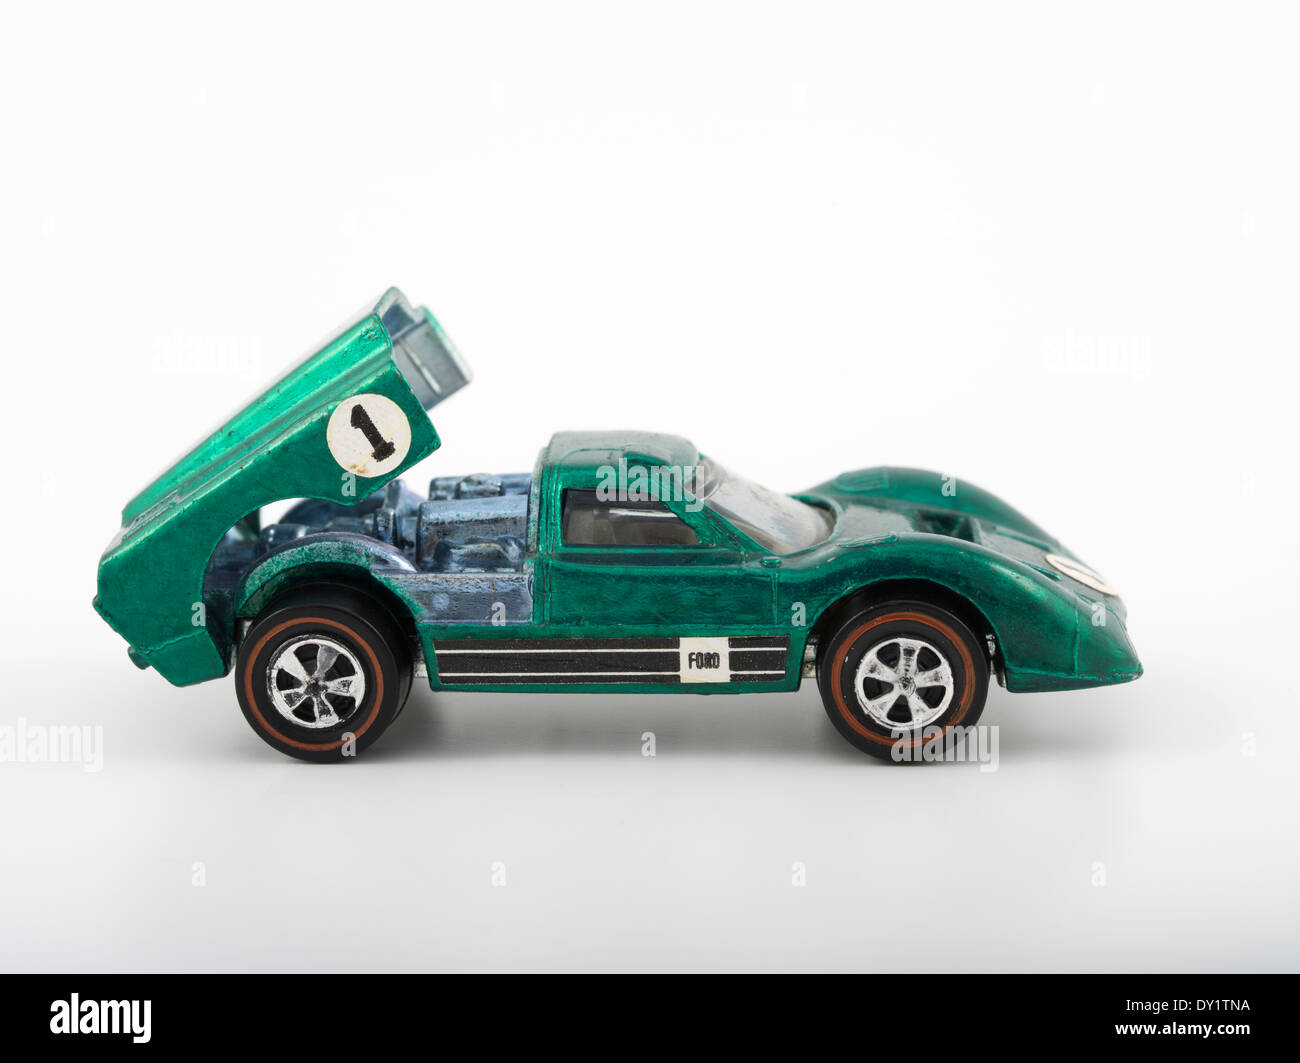 Green Ford J-Car , Hot Wheels die-cast toy cars by Mattel 1968 with Spectraflame paintwork - Stock Image